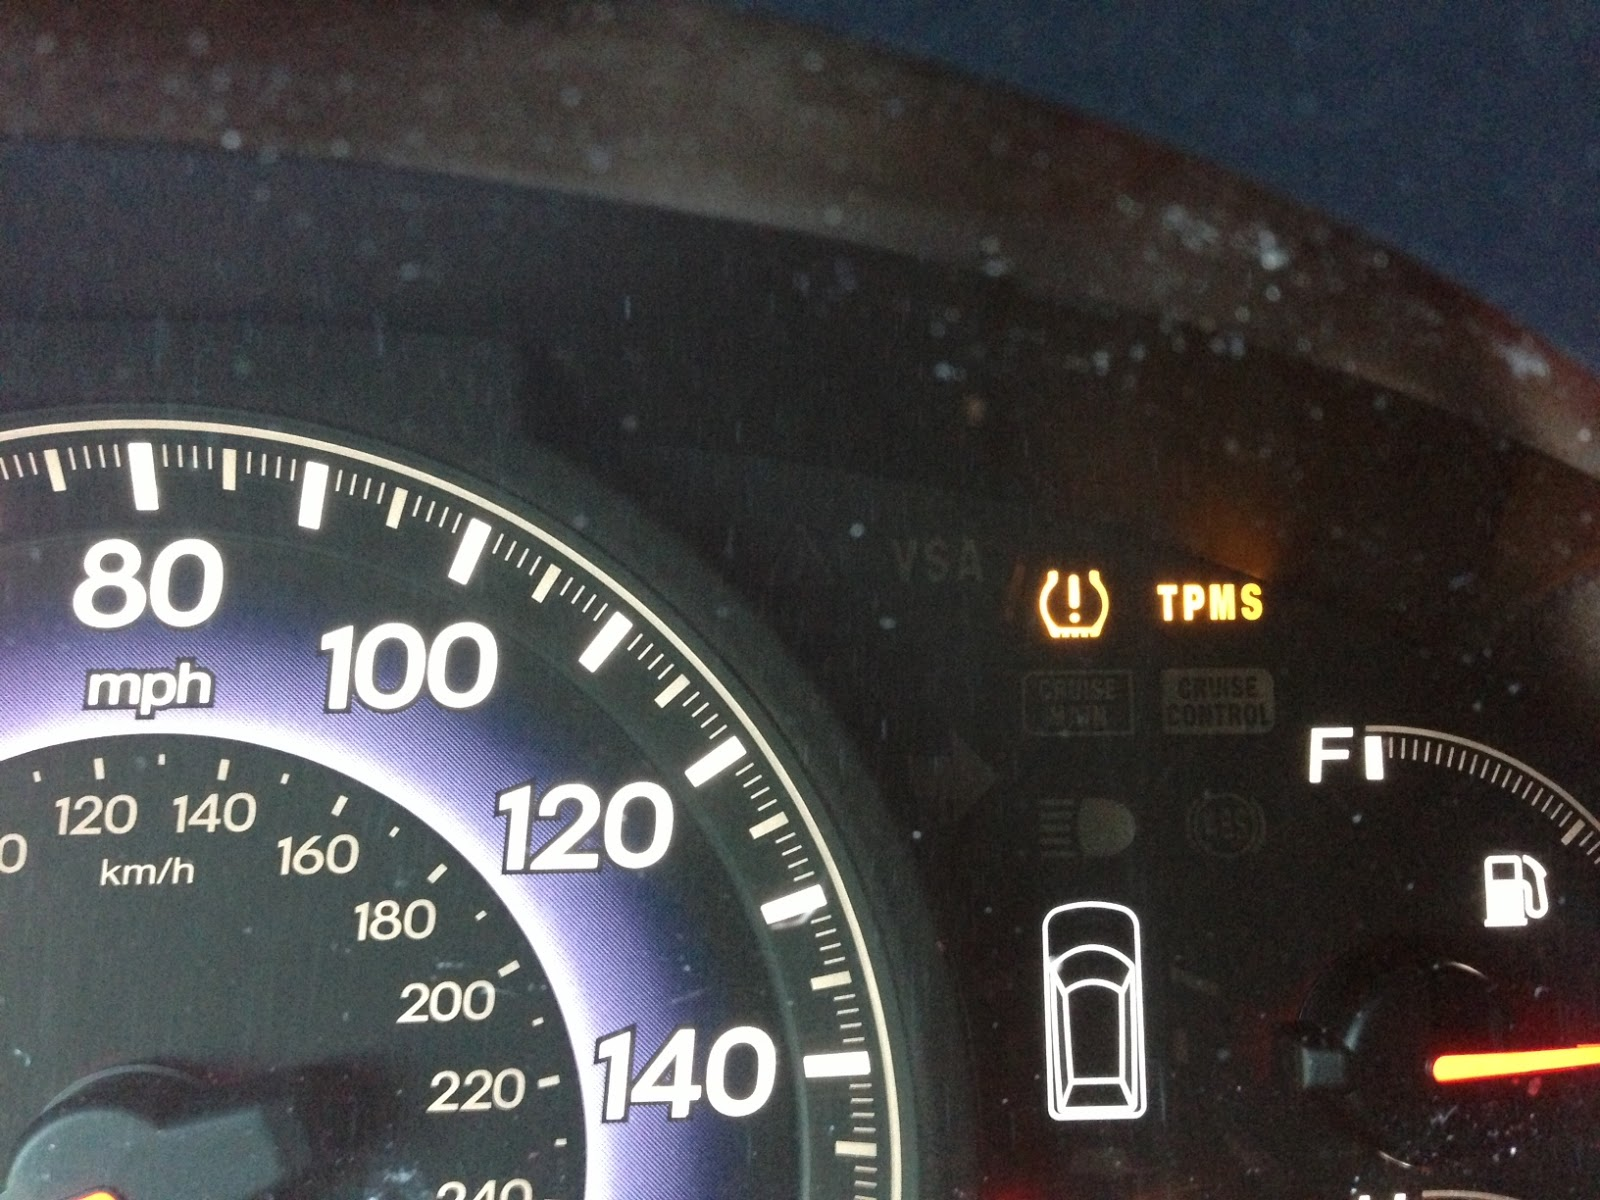 2012 Honda Civic Tire Pressure >> Honda of Orem Blog: TPMS is Totally Different From PMS